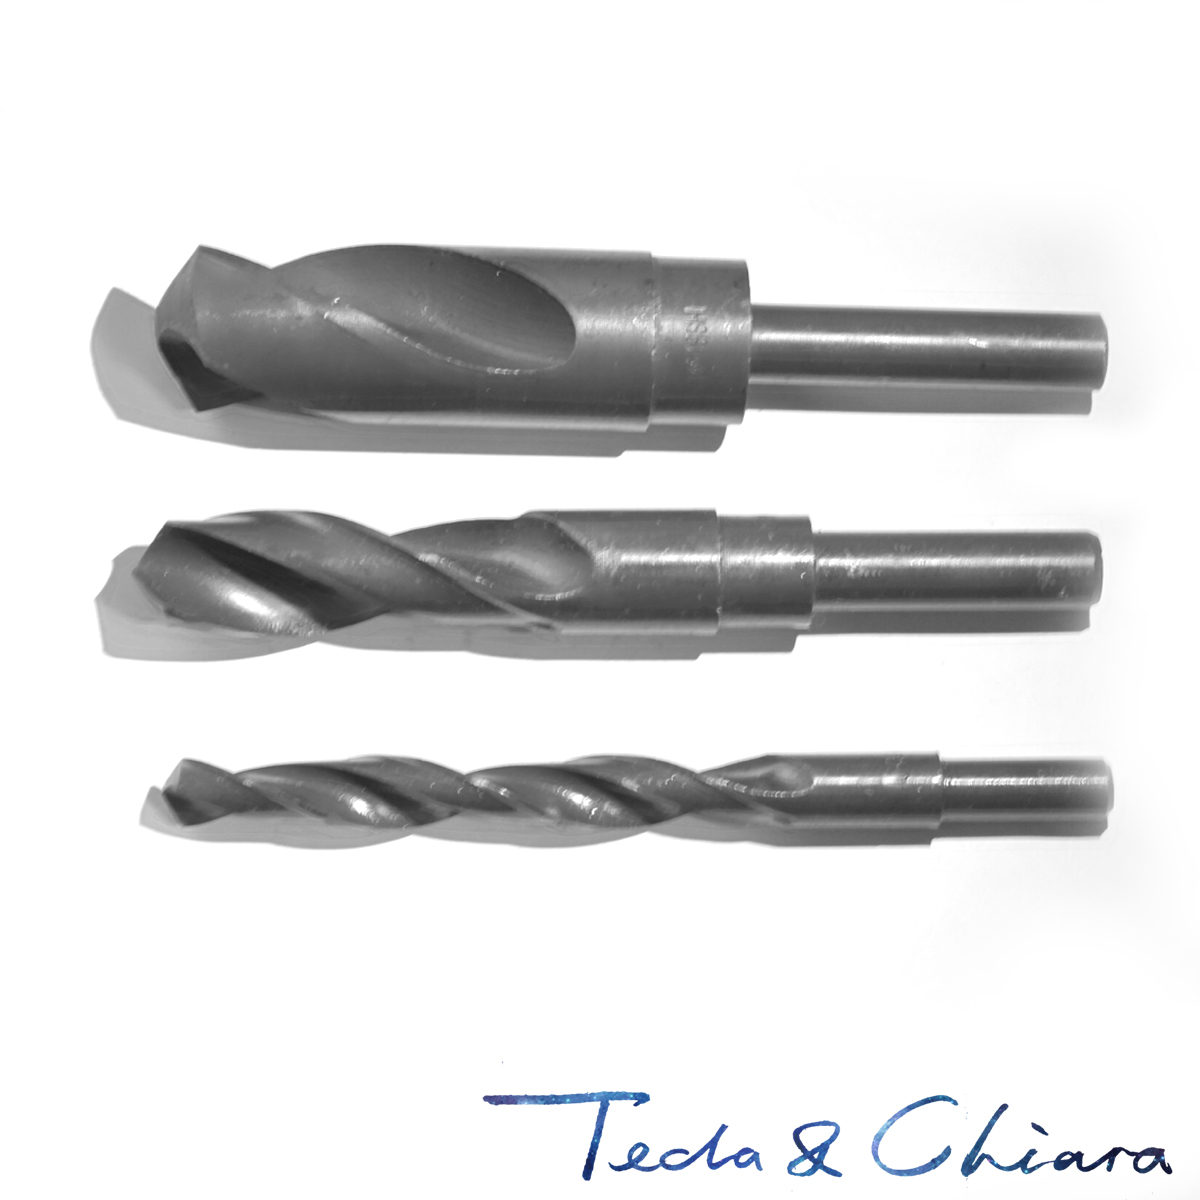 25.5mm 26mm 26.5mm 27mm HSS Reduced Straight Crank Twist Drill Bit Shank Dia 12.7mm 1/2 Inch 25.5 26 26.5 27